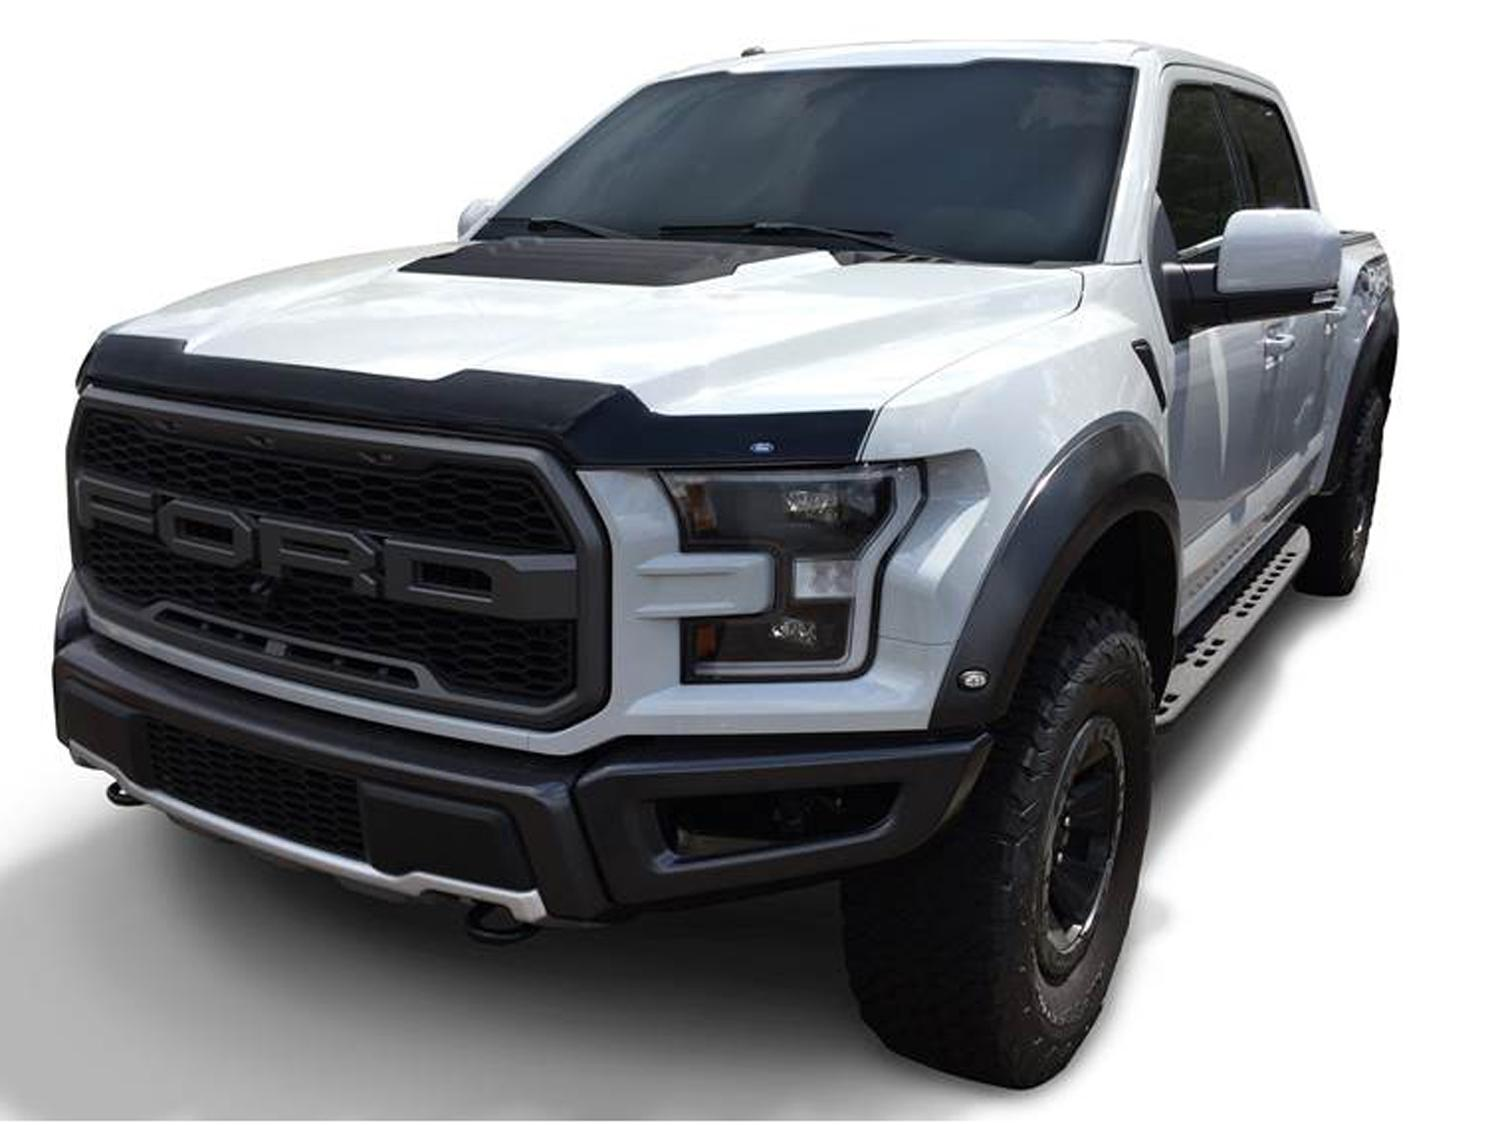 Hood Protector by Lund - Aeroskin, For Raptor, Smoke